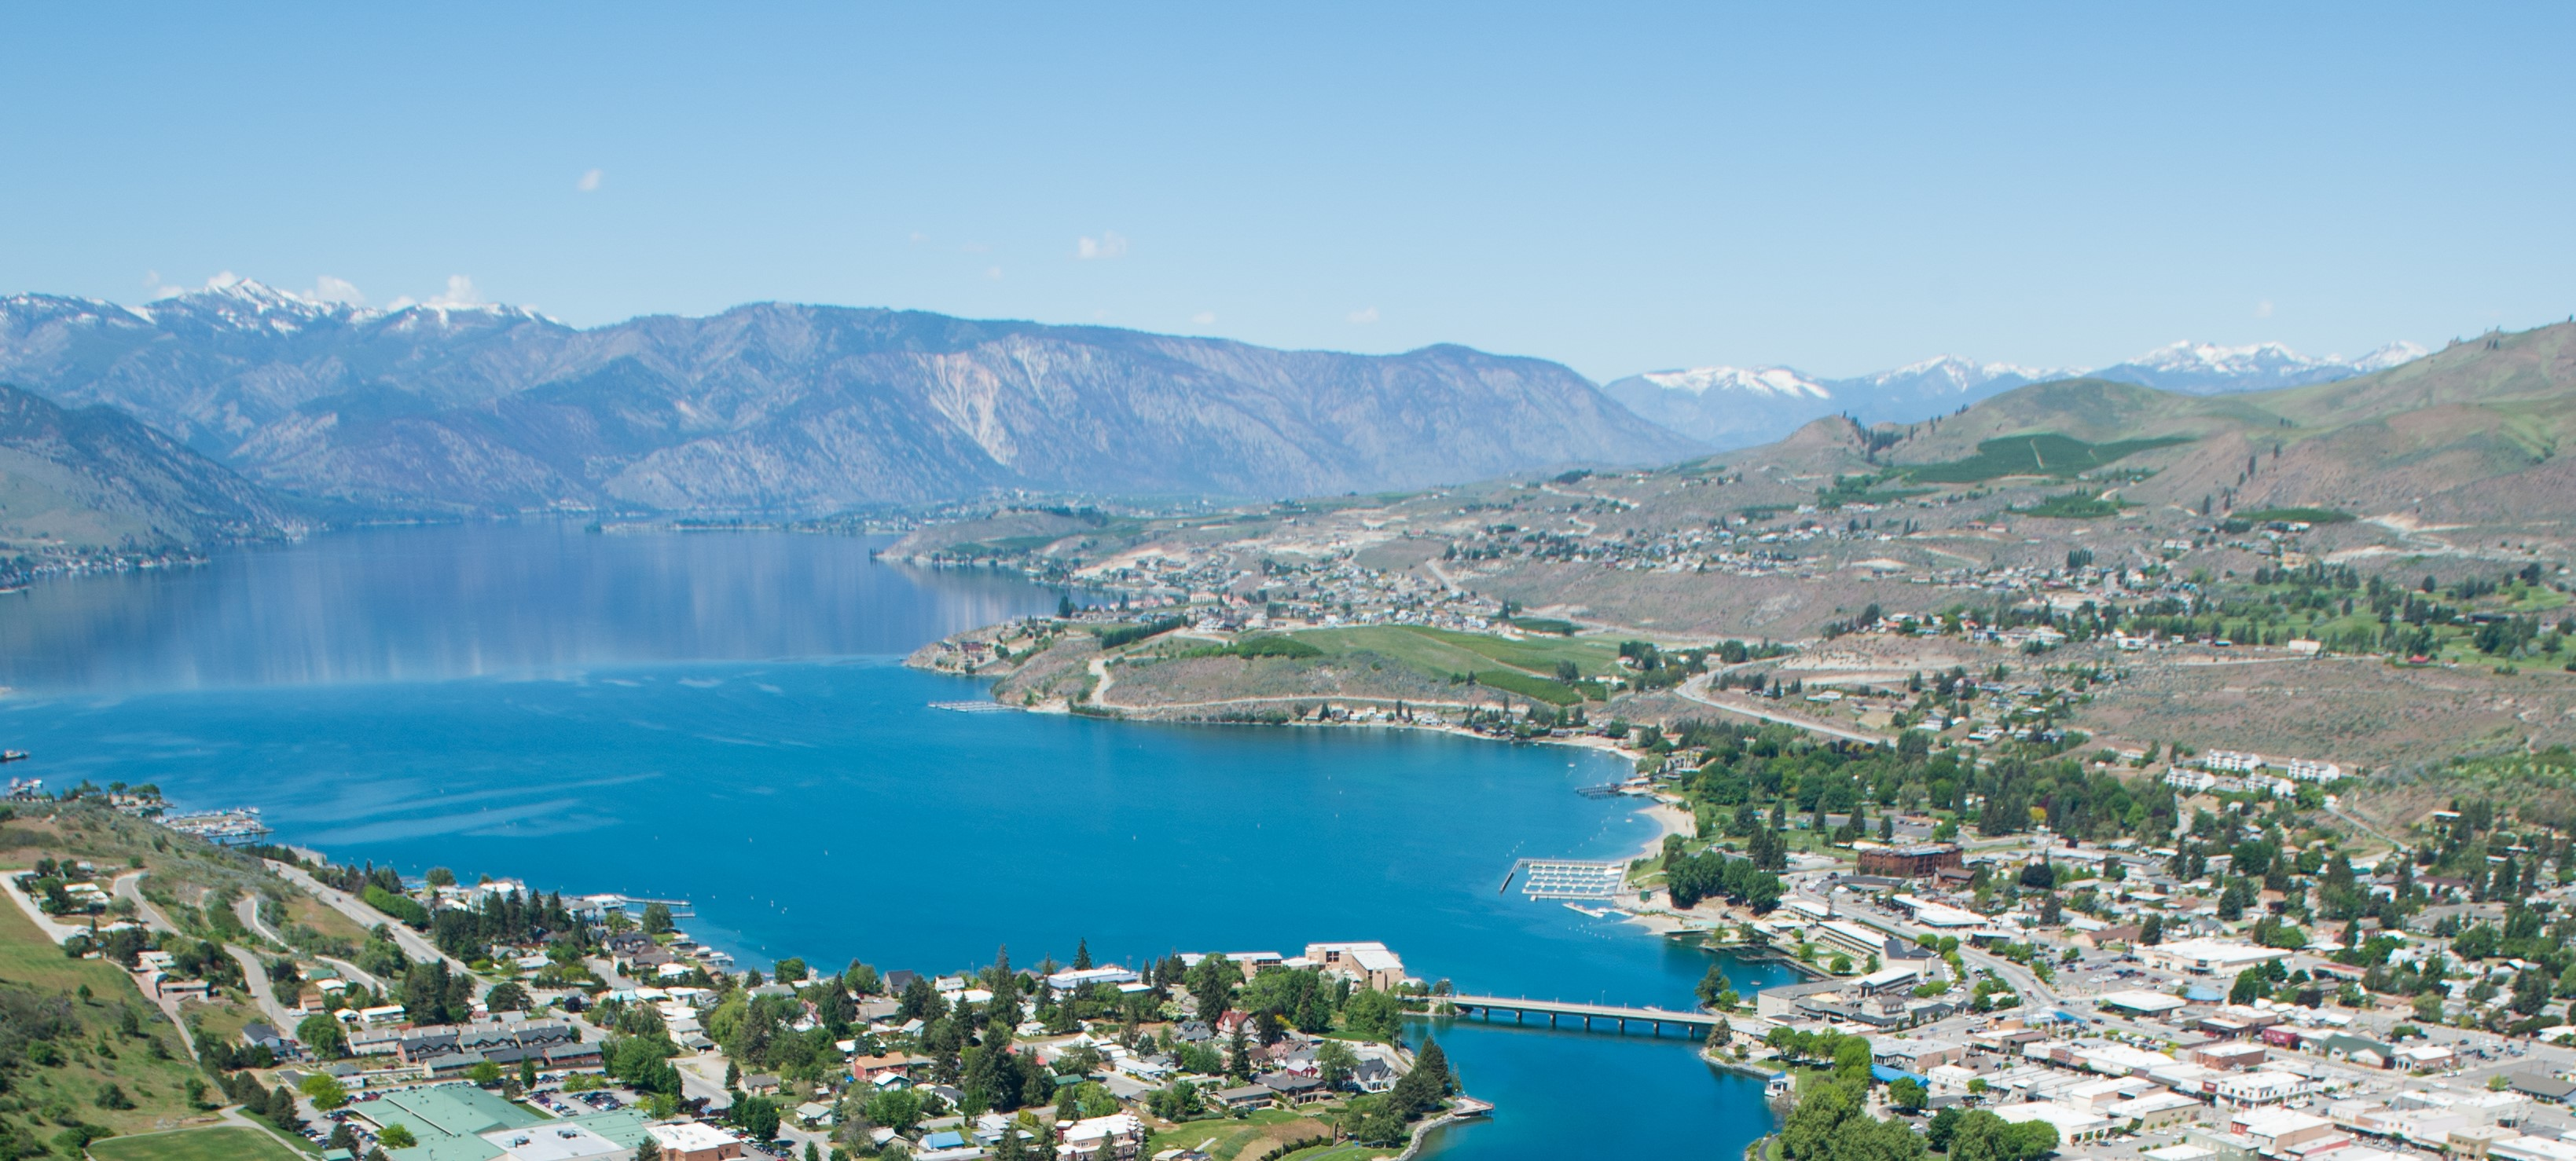 Aerial image of the North Shore of Lake Chelan